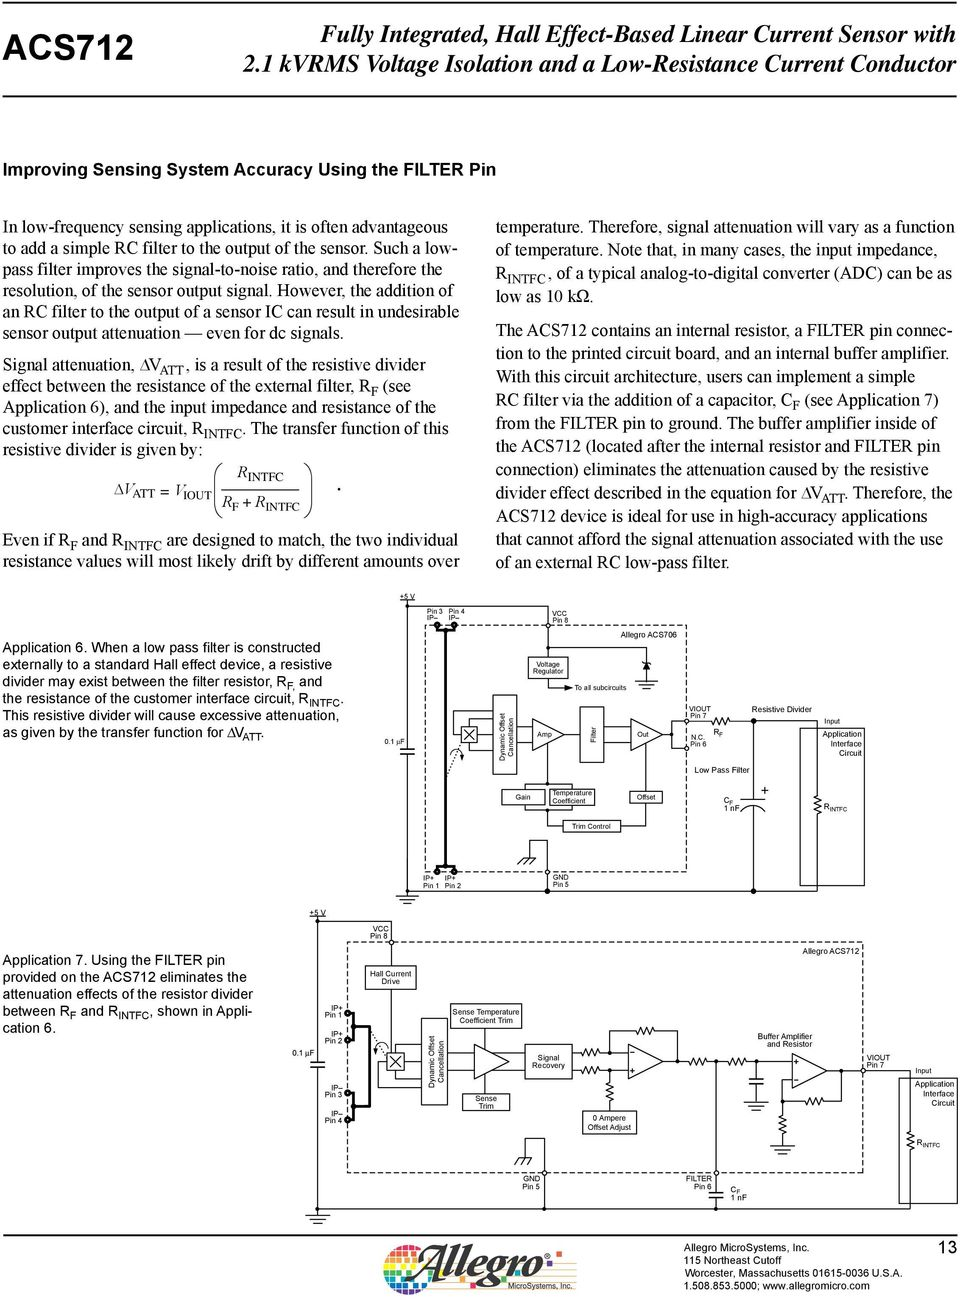 Typical Application 5 V Vcc 2 Out Acs712 Filter 4 Ip Gnd C F 1 Hall Effect Sensor Wiring Details Image However The Addition Of An Rc To Output A Ic Can